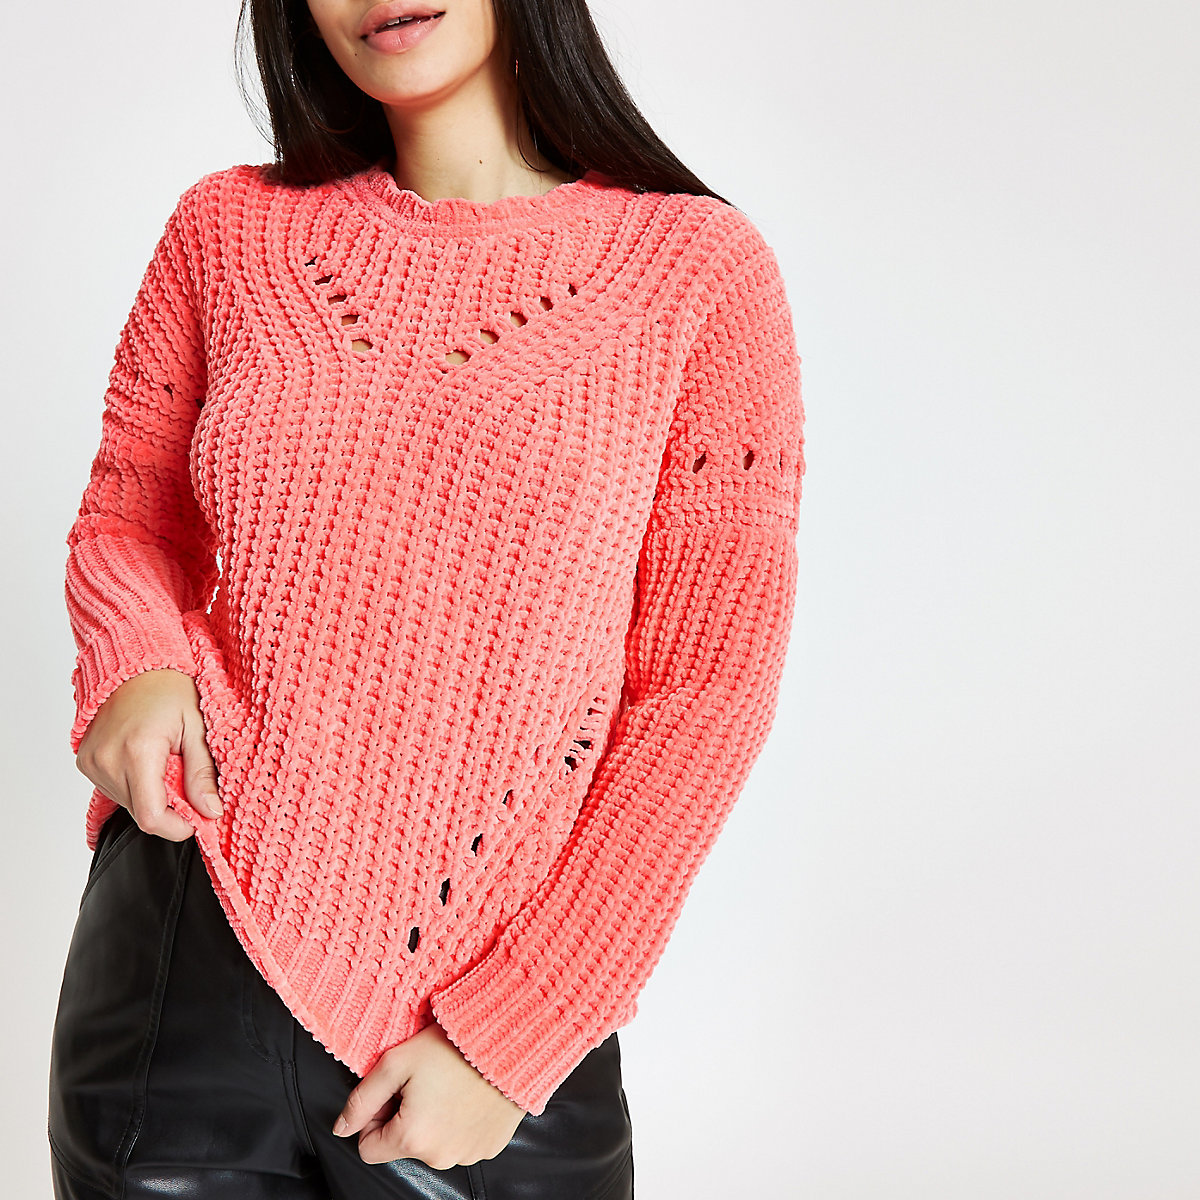 Bright pink knit chenille jumper